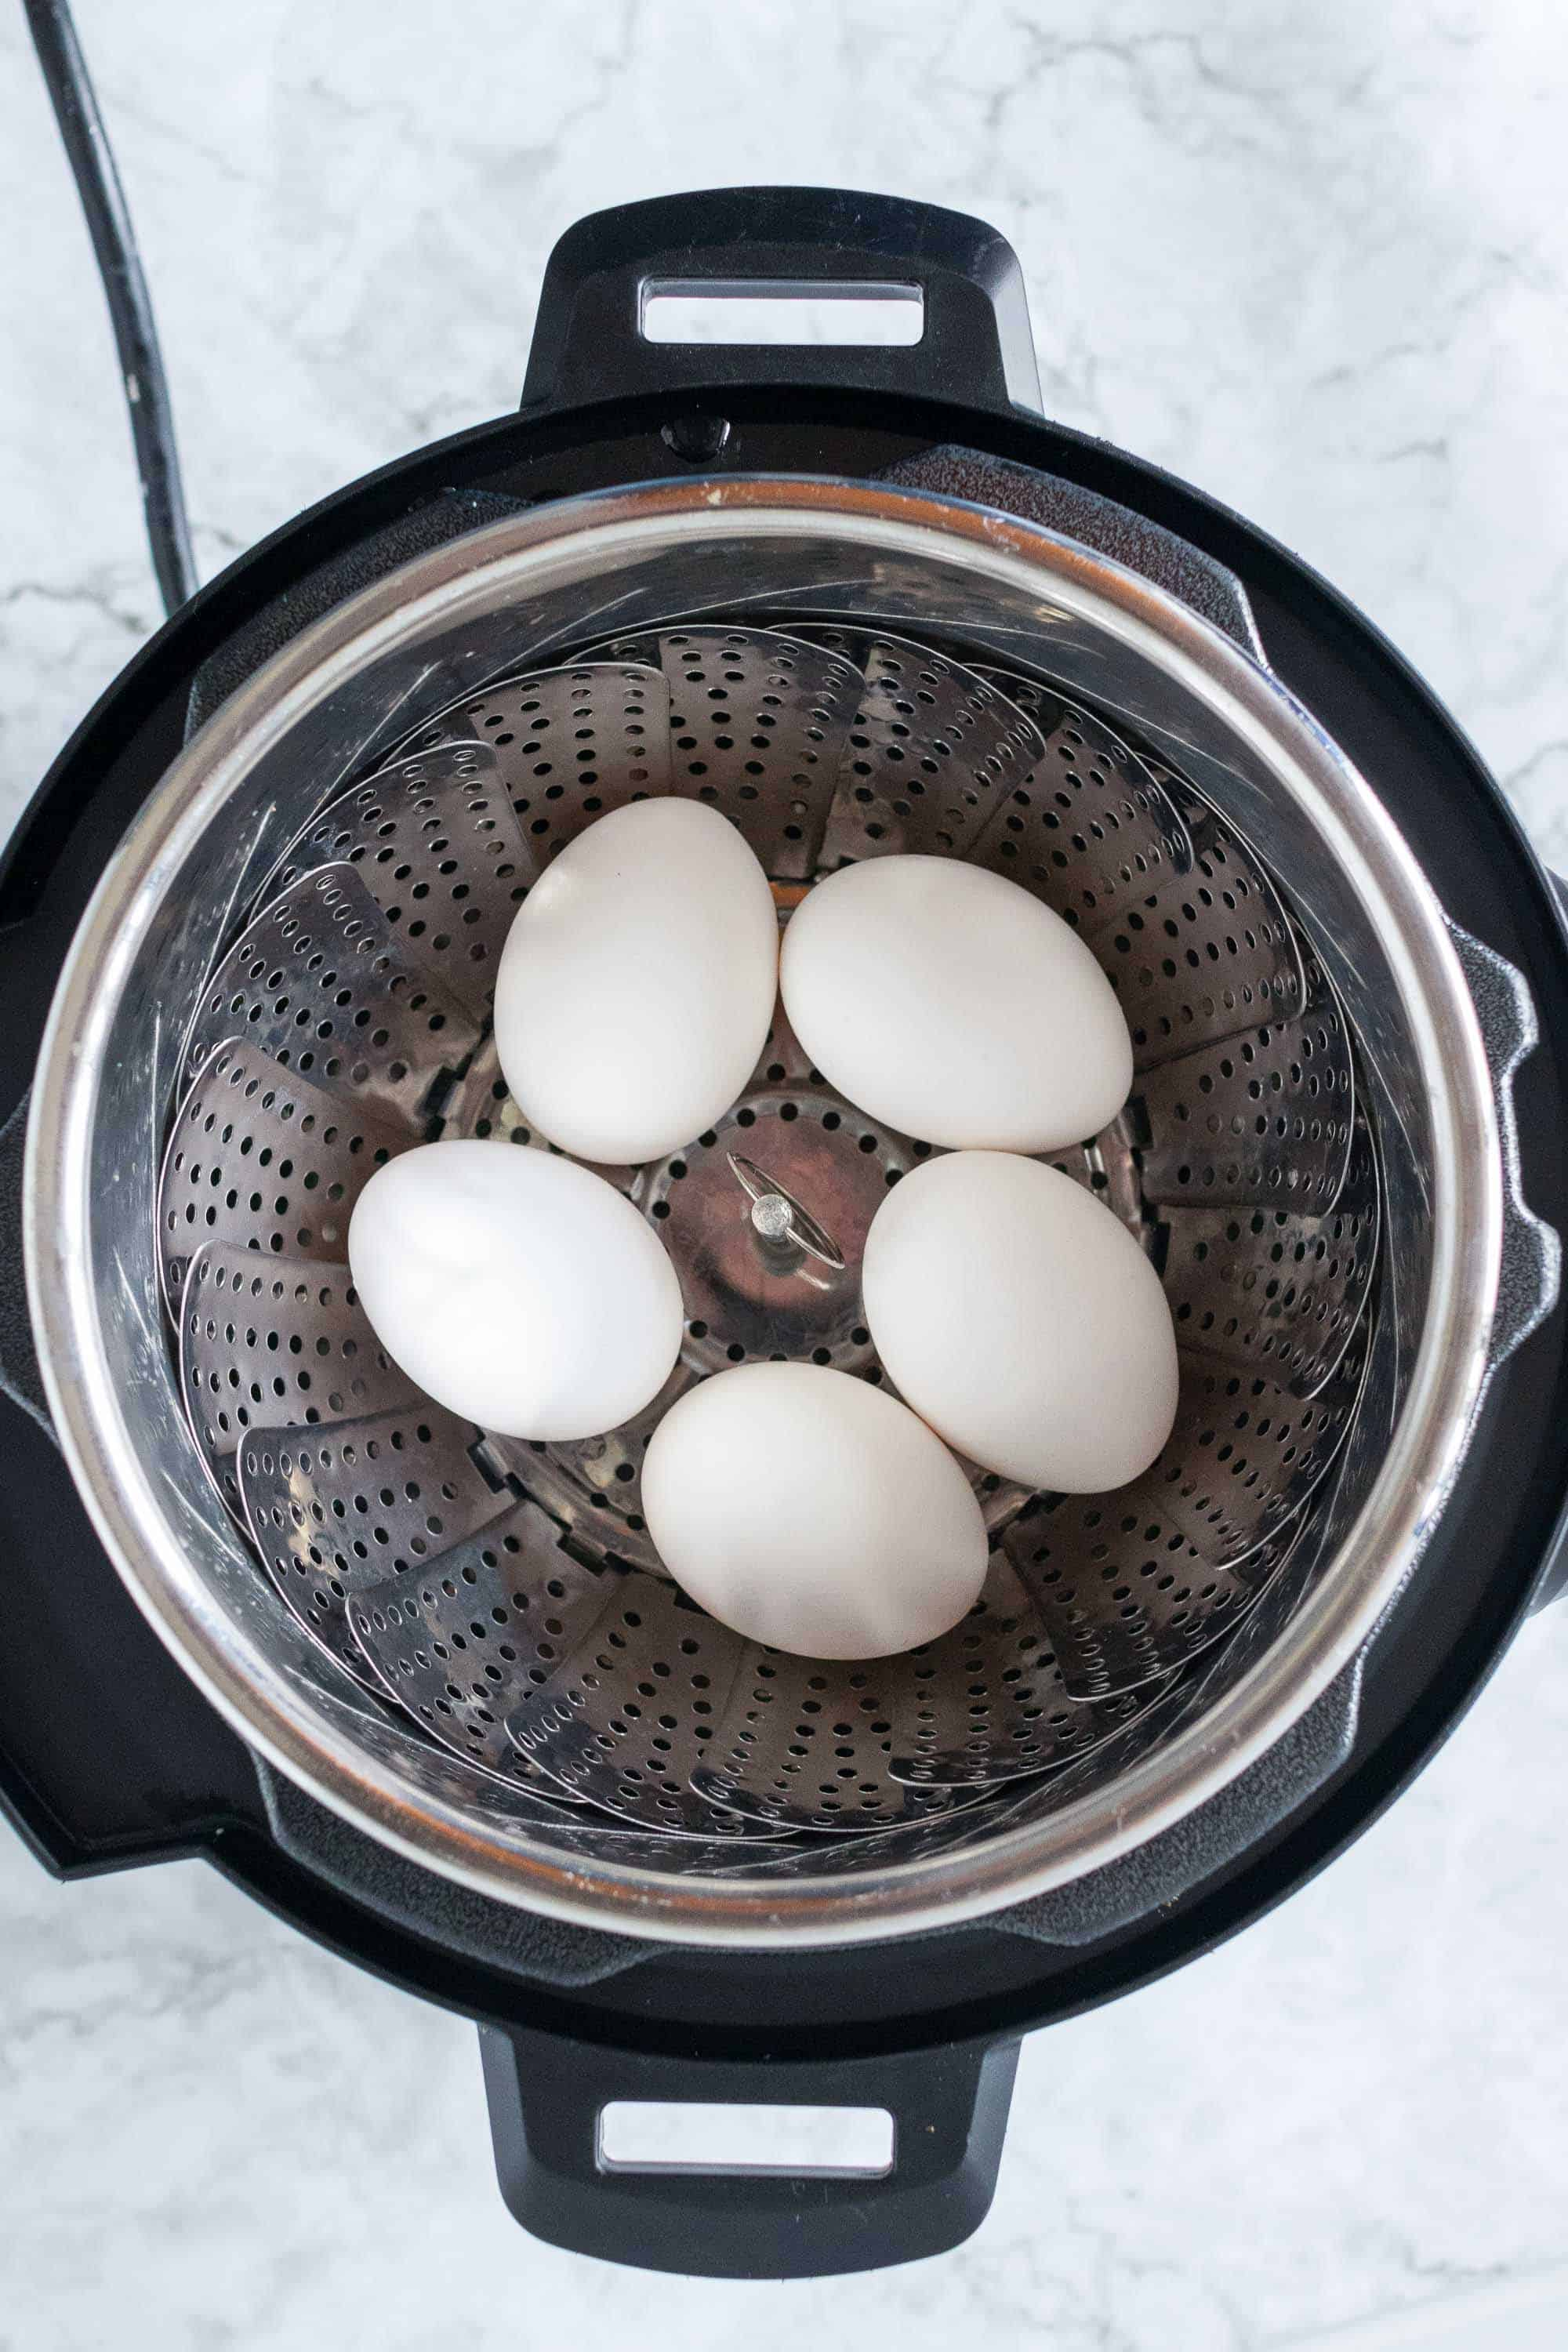 steamer basket in instant pot with eggs in it